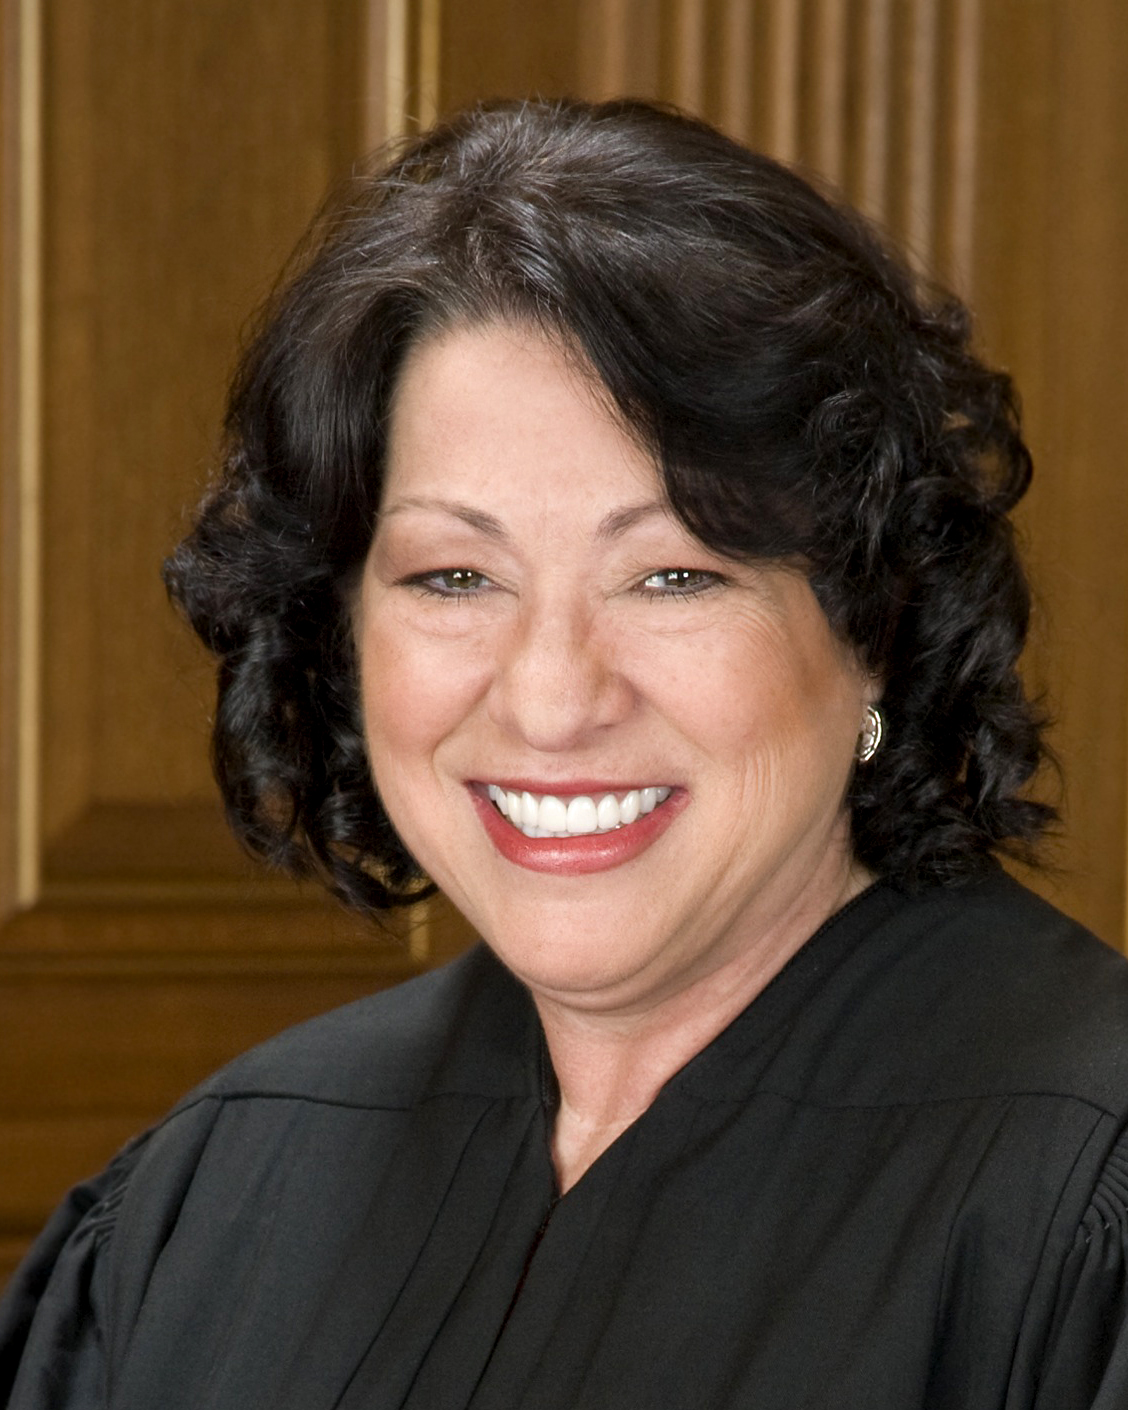 Sonia Sotomayor Net Worth